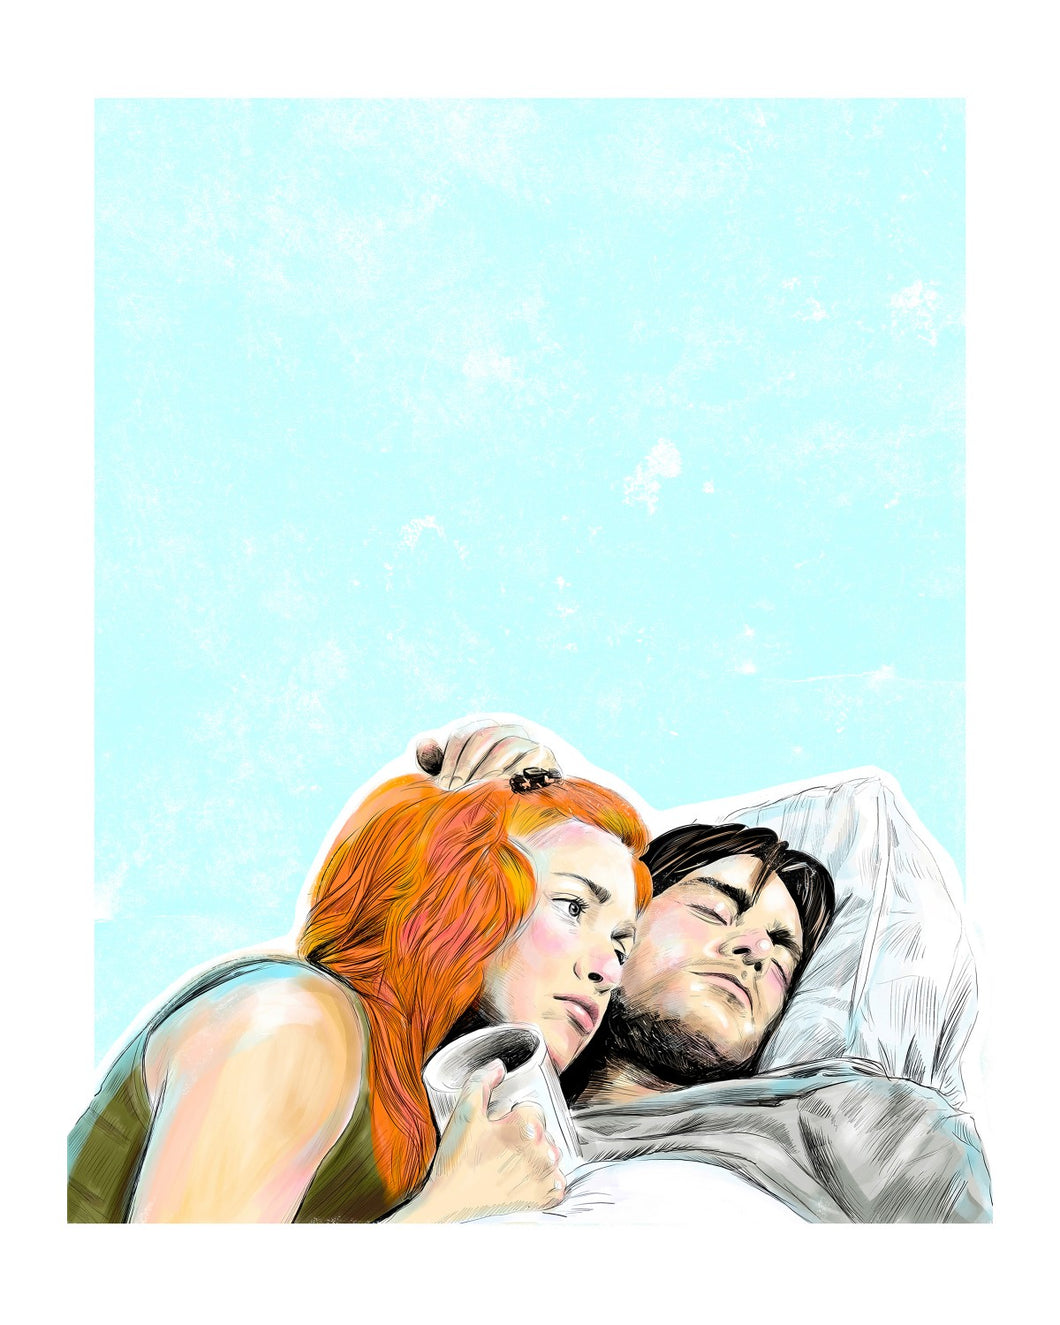 Eternal Sunshine of the Spotless Mind 8x10 print